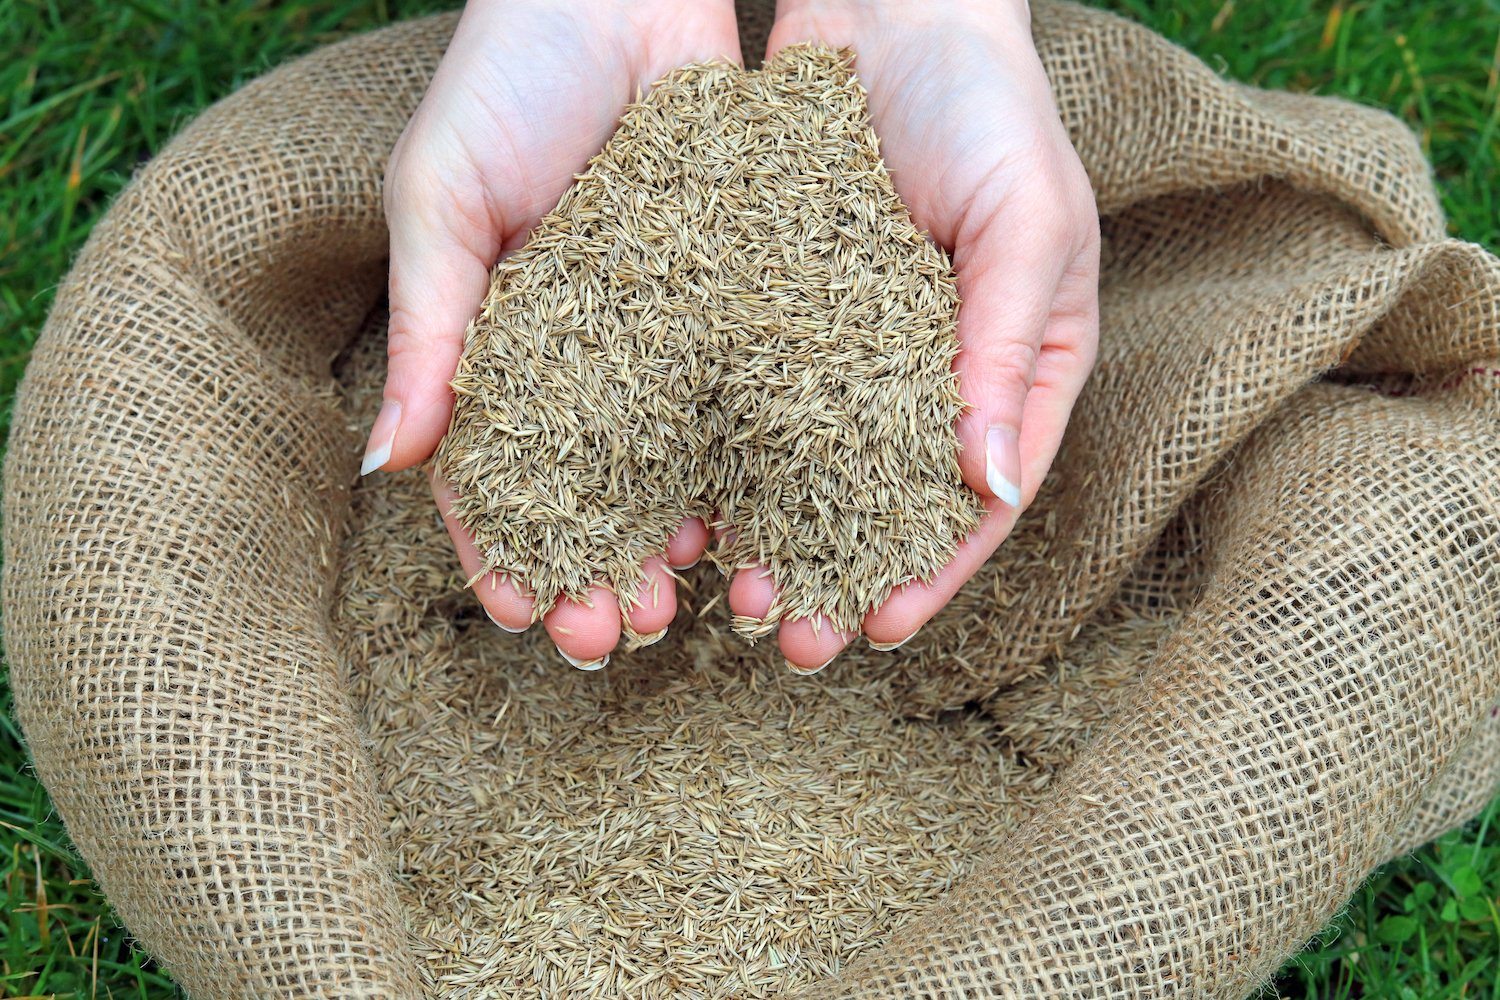 Throwing grass seed down in your lawn